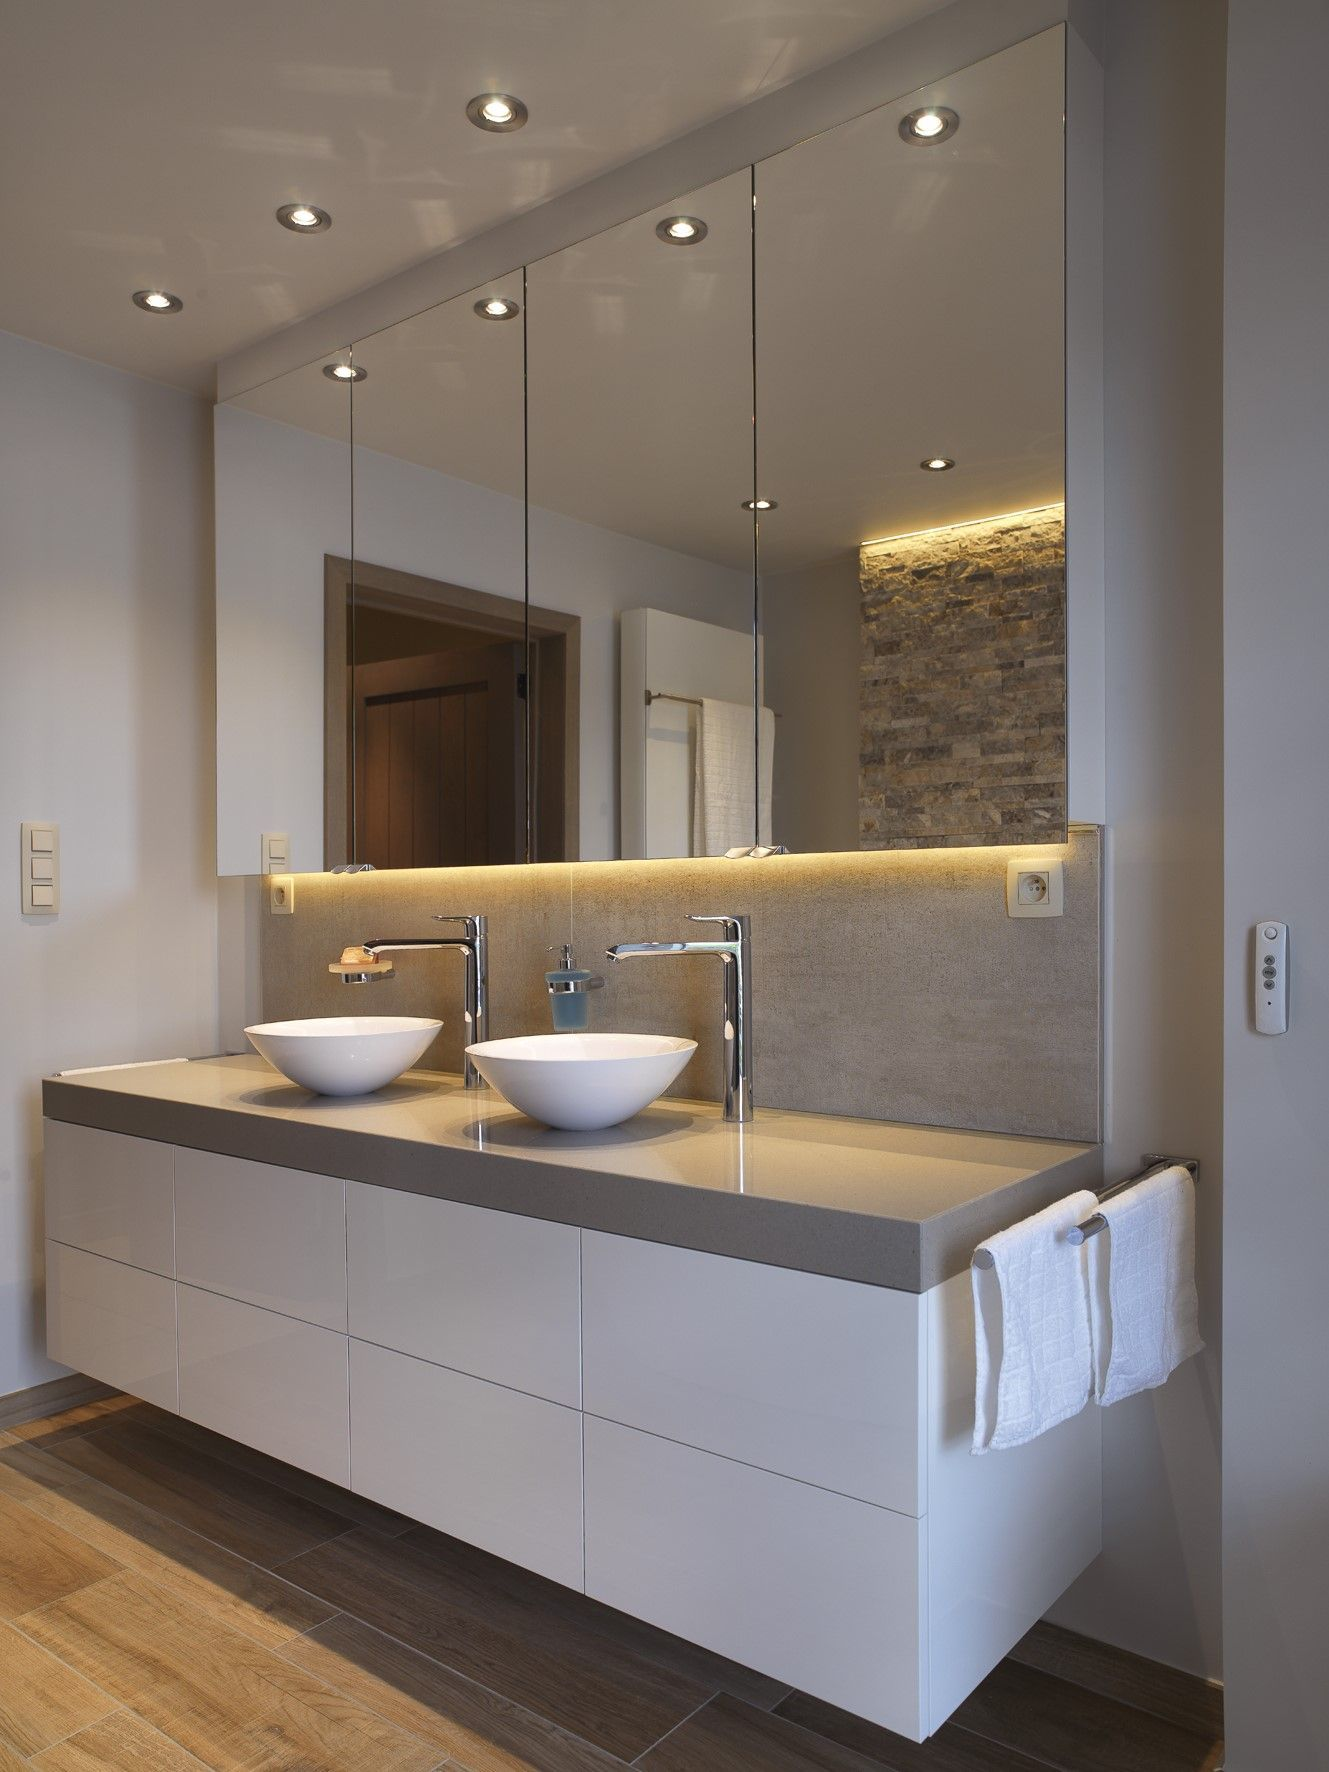 Assenti bathroom furniture limited edition. Special design on